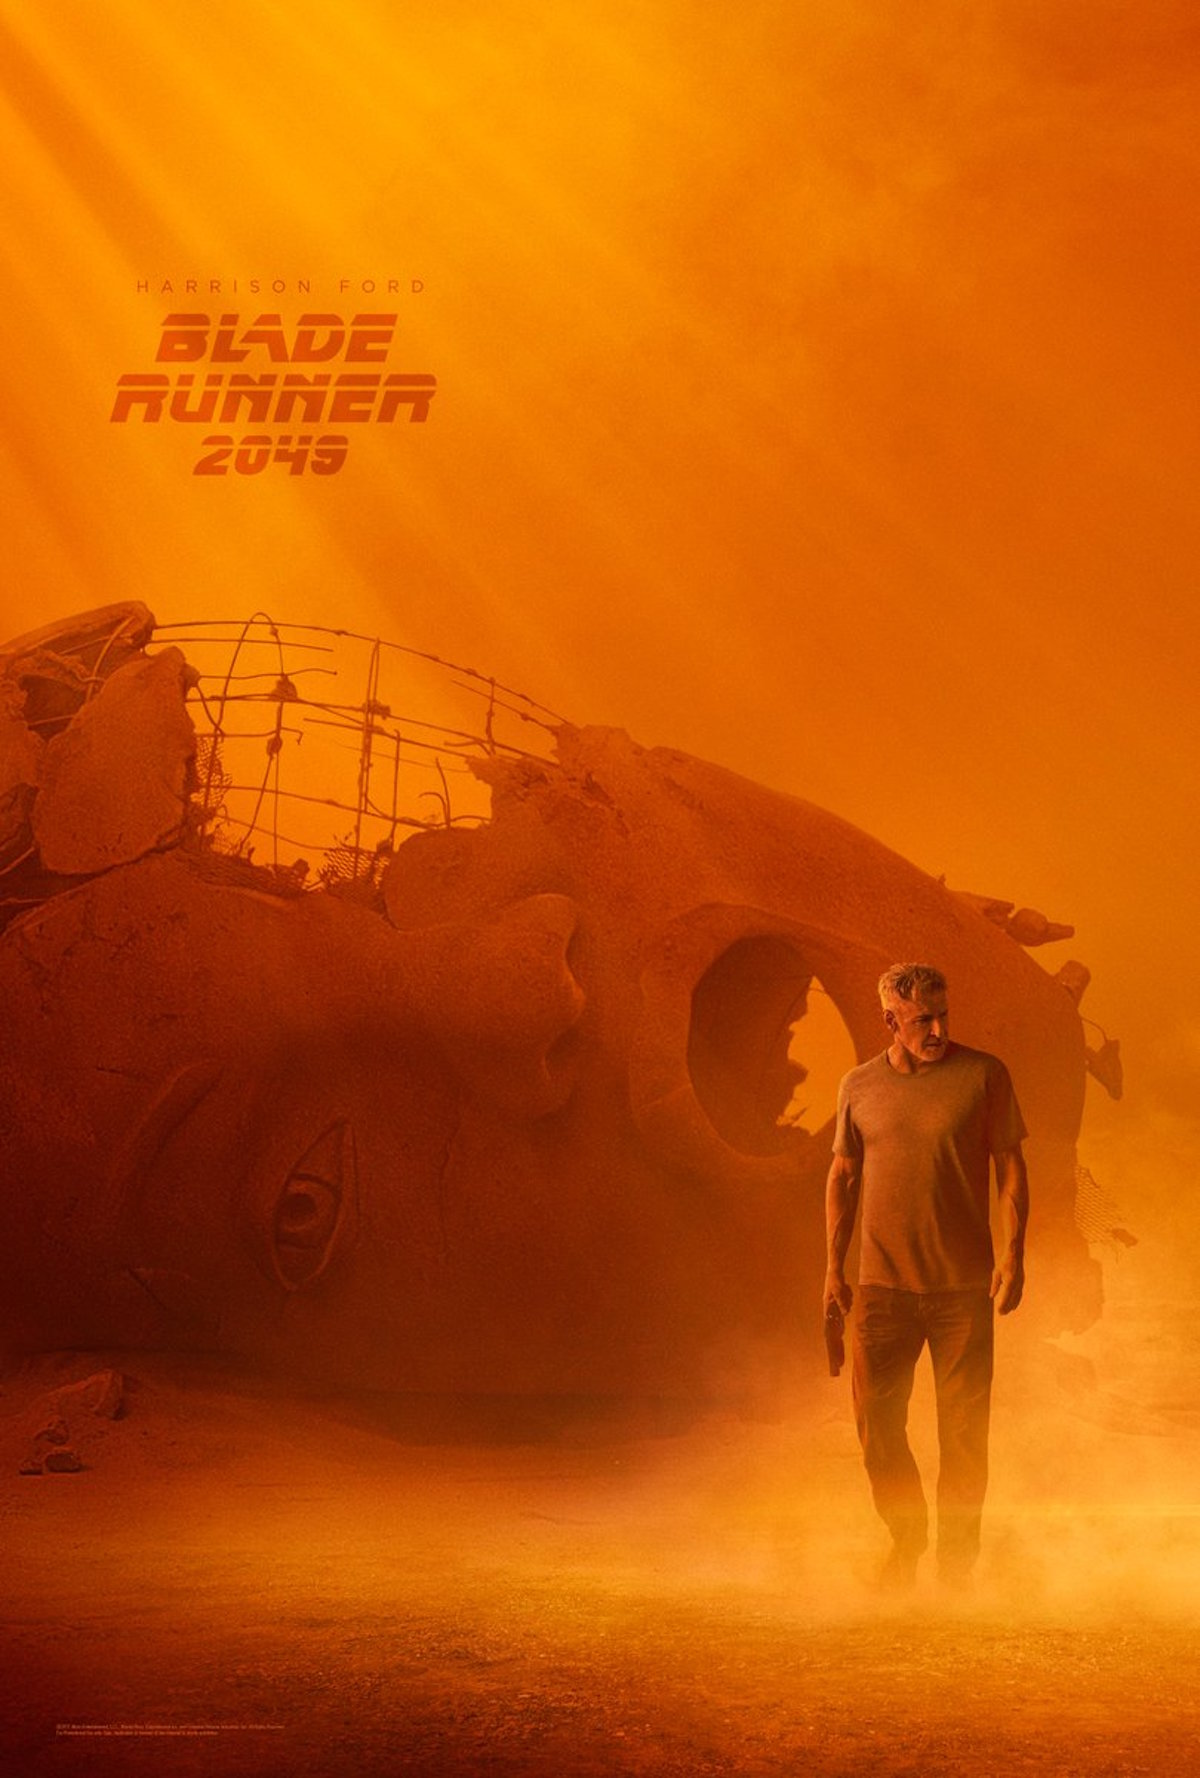 blade runner 2049 poster ford Here are two new swanky posters for Blade Runner 2049